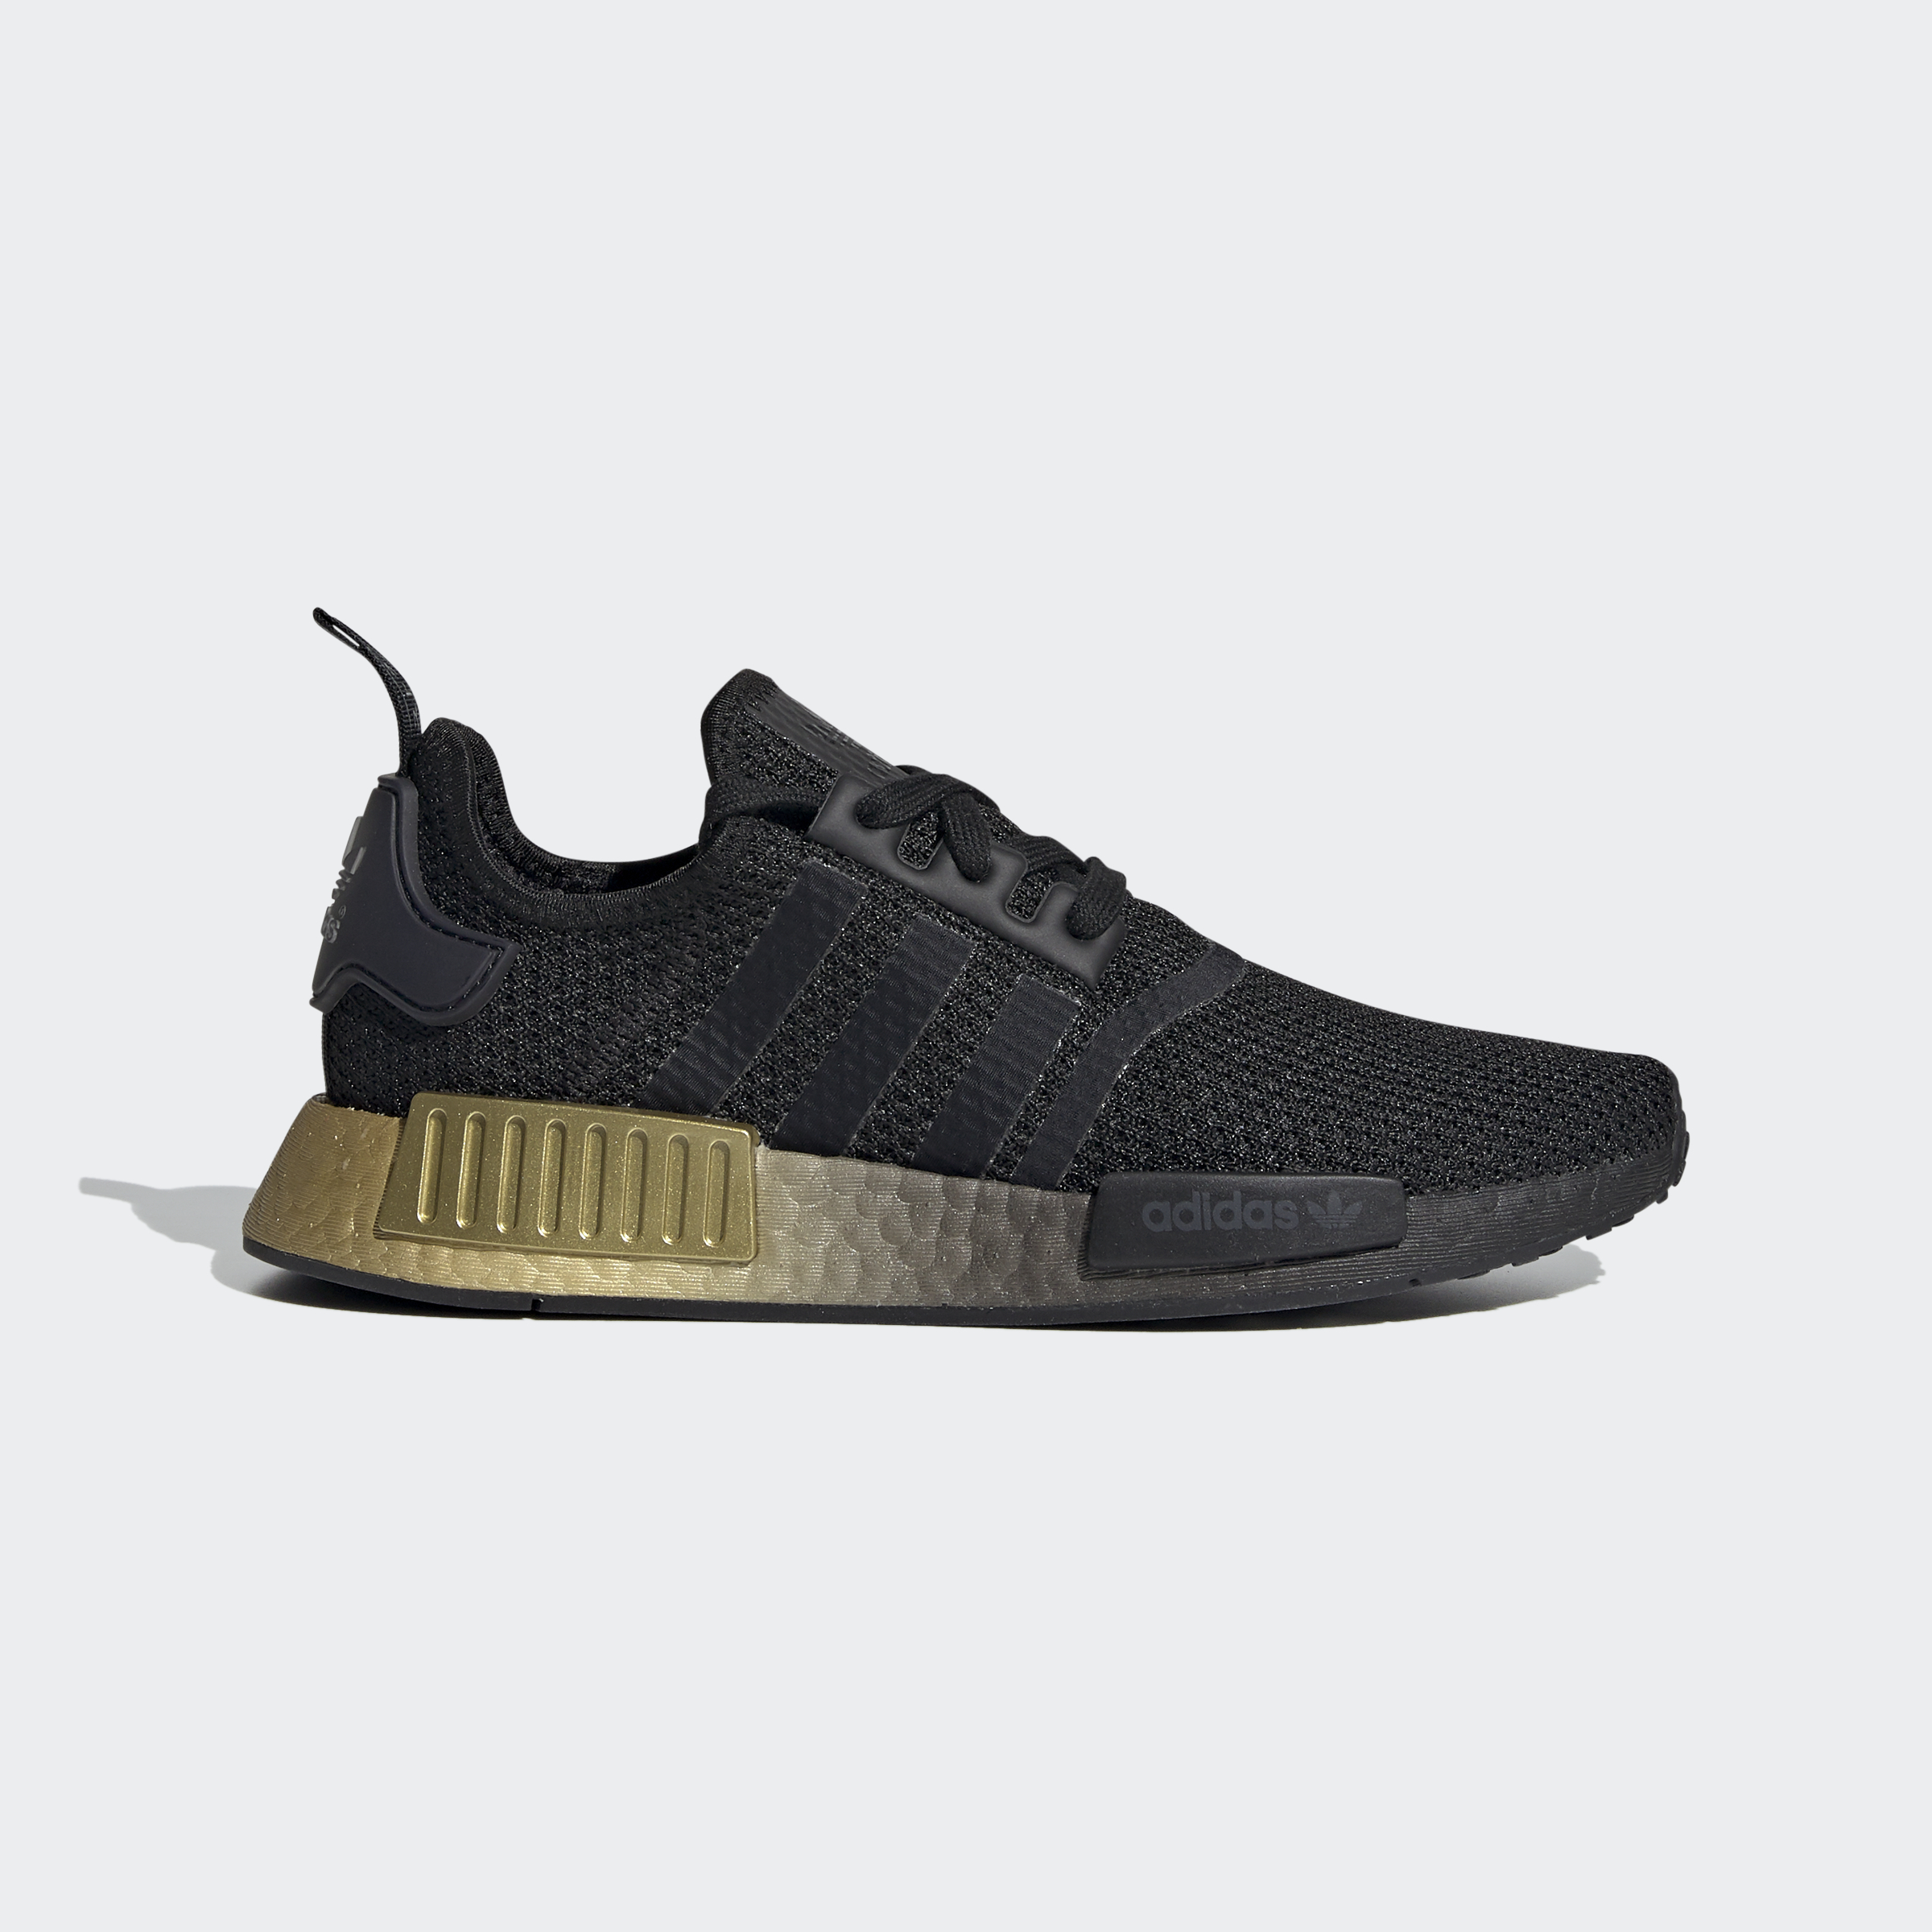 adidas-NMD-R1-Shoes-Women-039-s-Athletic-amp-Sneakers thumbnail 12